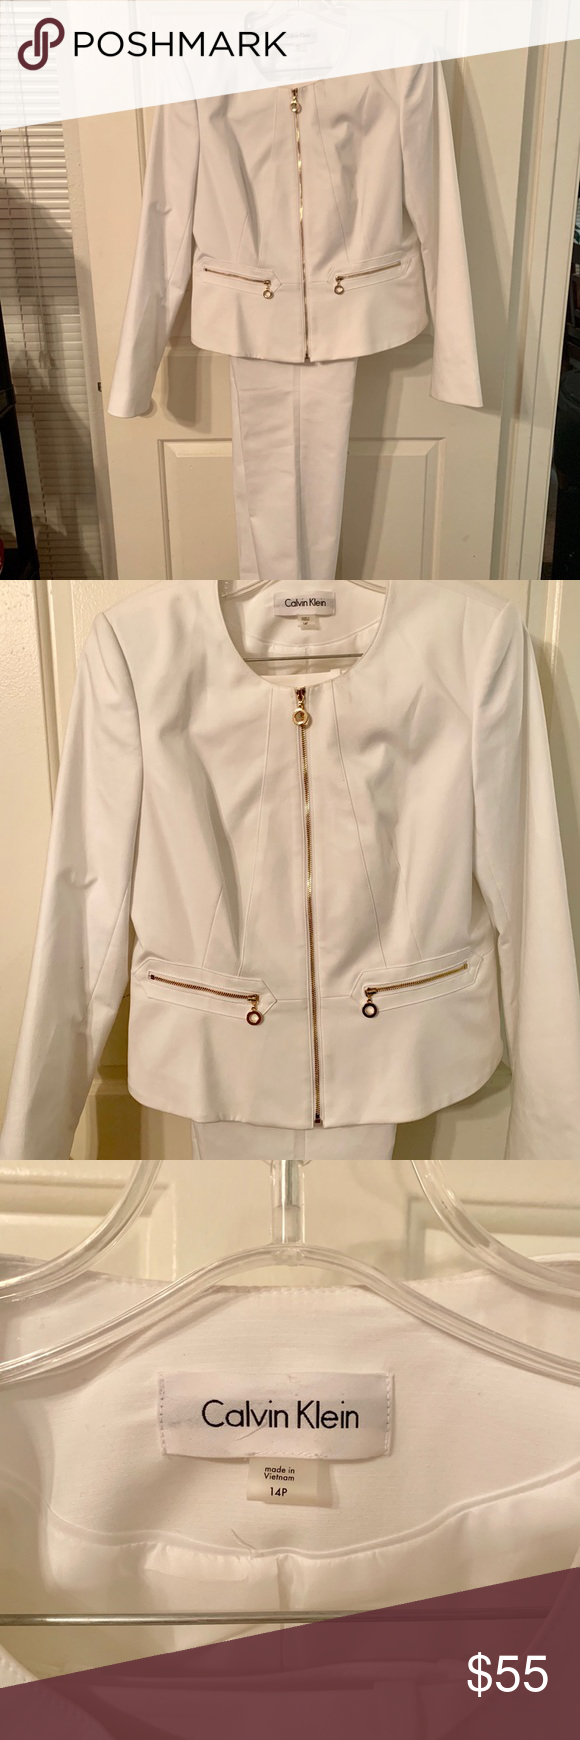 Calvin Klein White Pantsuit Size 14P This pantsuit has a gold zipper down the front and zipper pockets.  It's gently used and still in great condition Calvin Klein Other #whitepantsuit